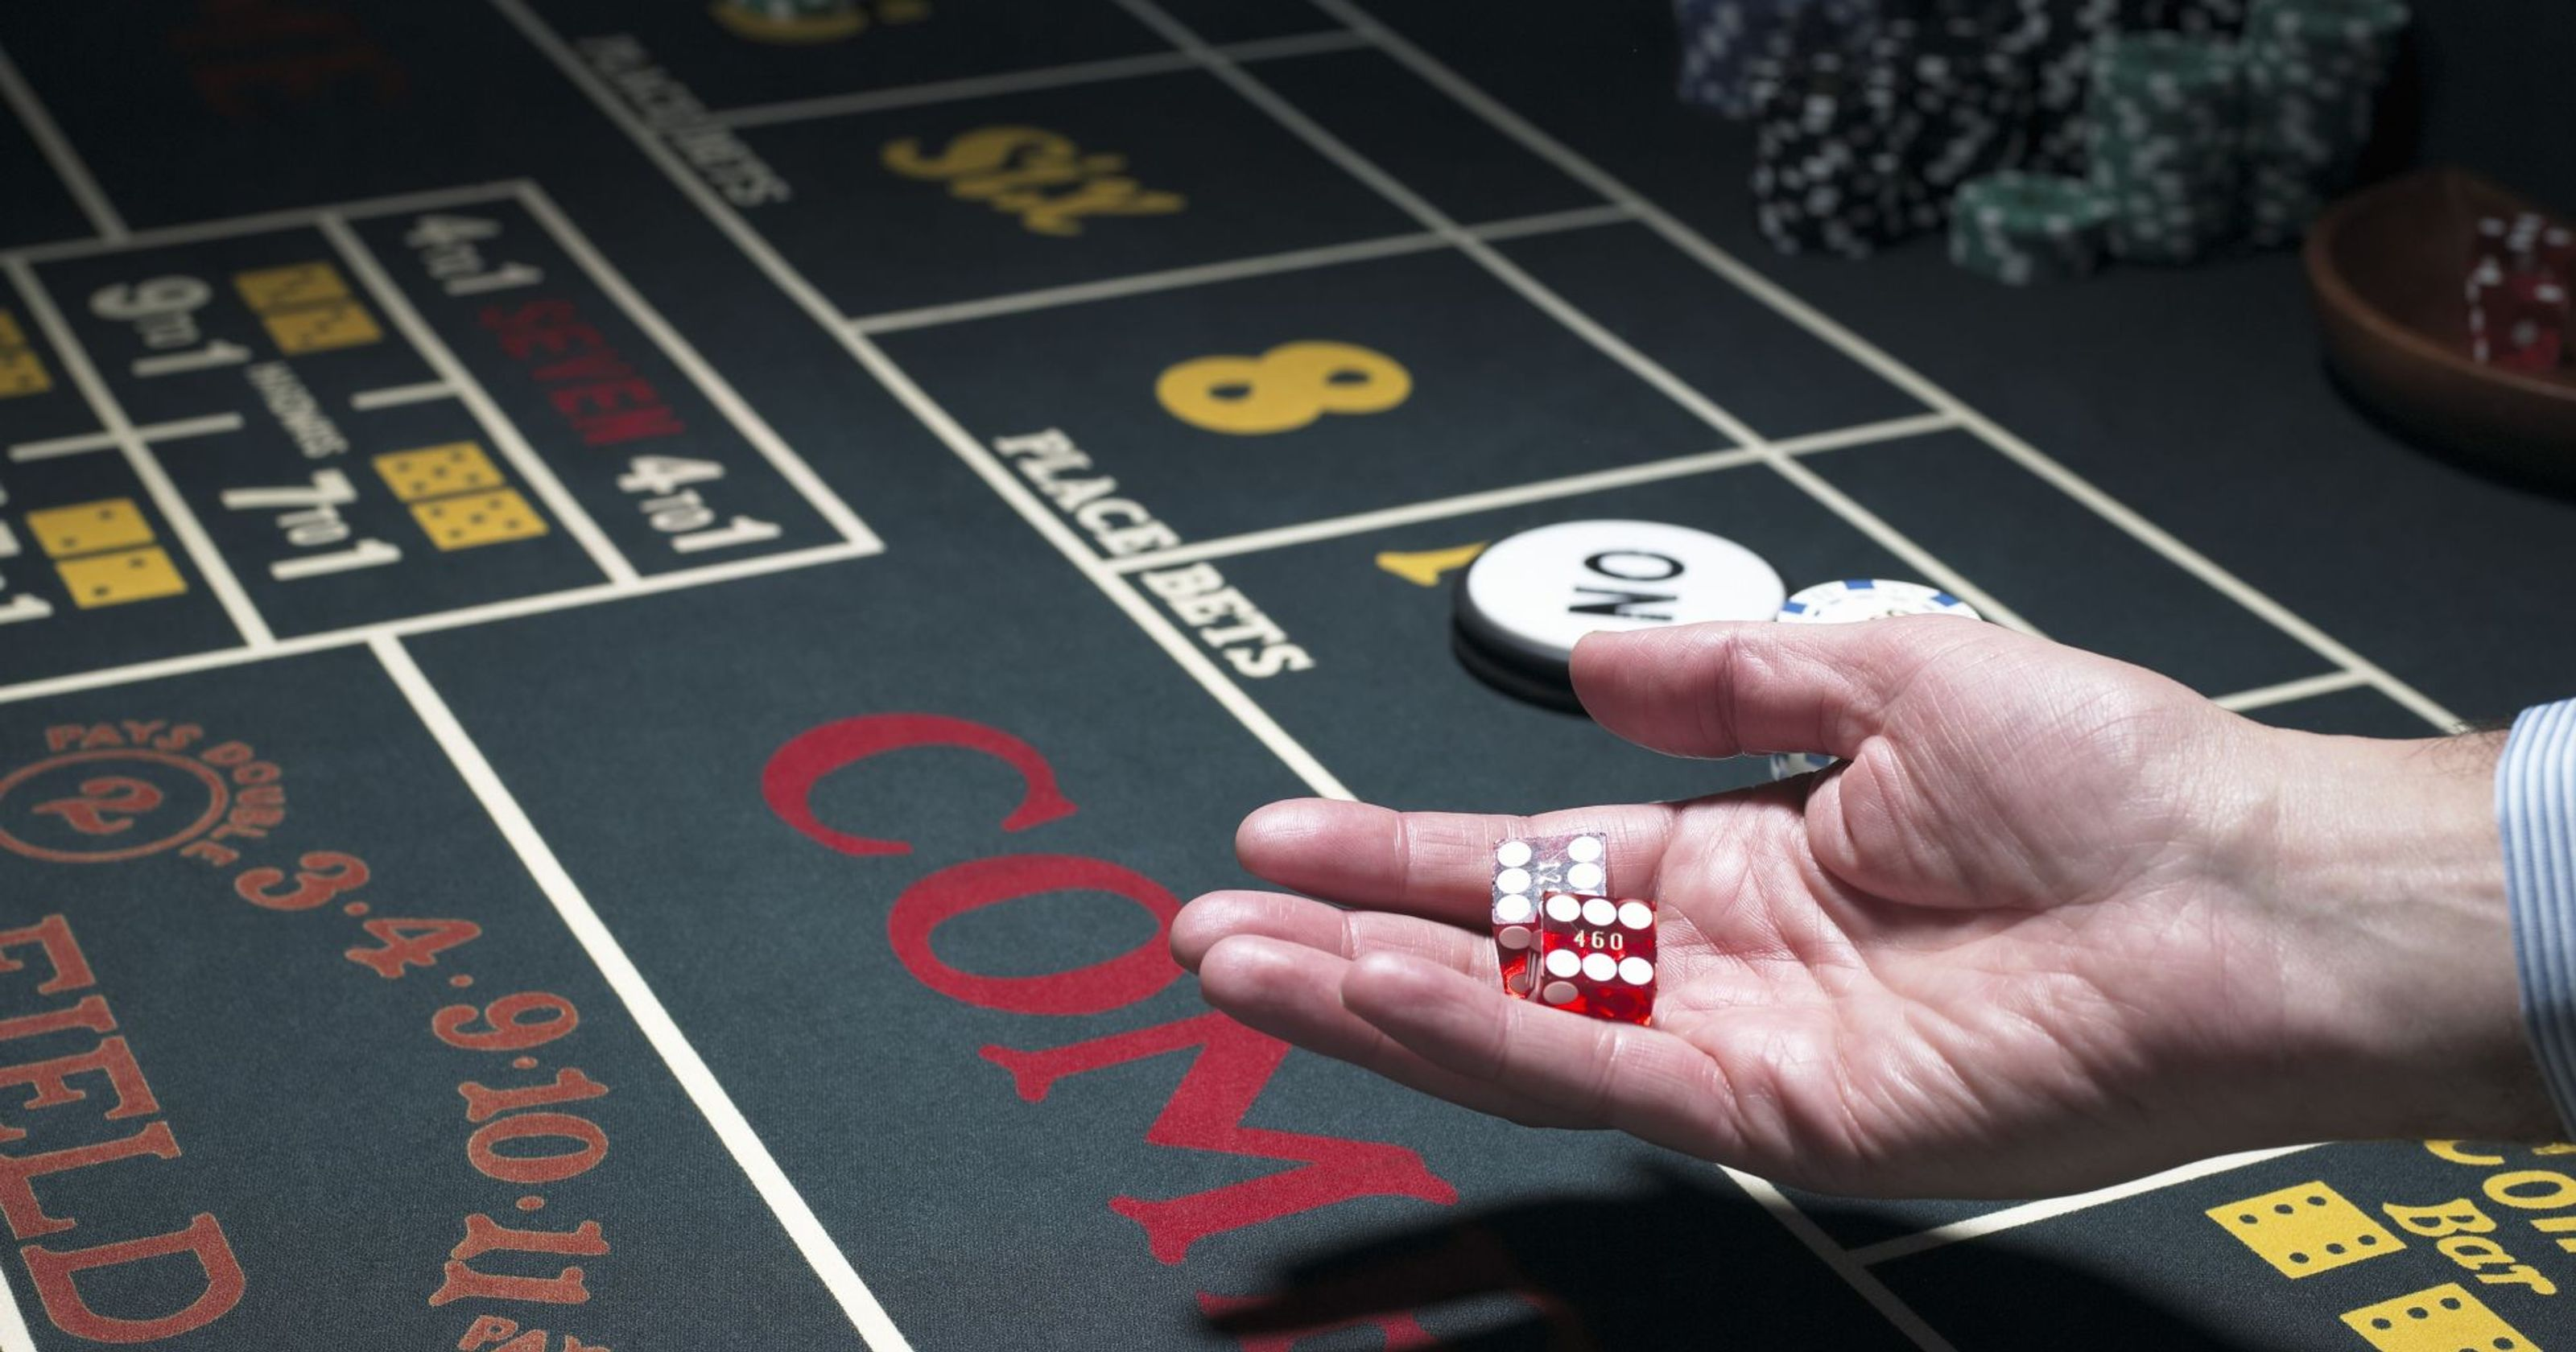 Mark Twain Casino Facing 50k Fine For Multiple Cheating Incidents